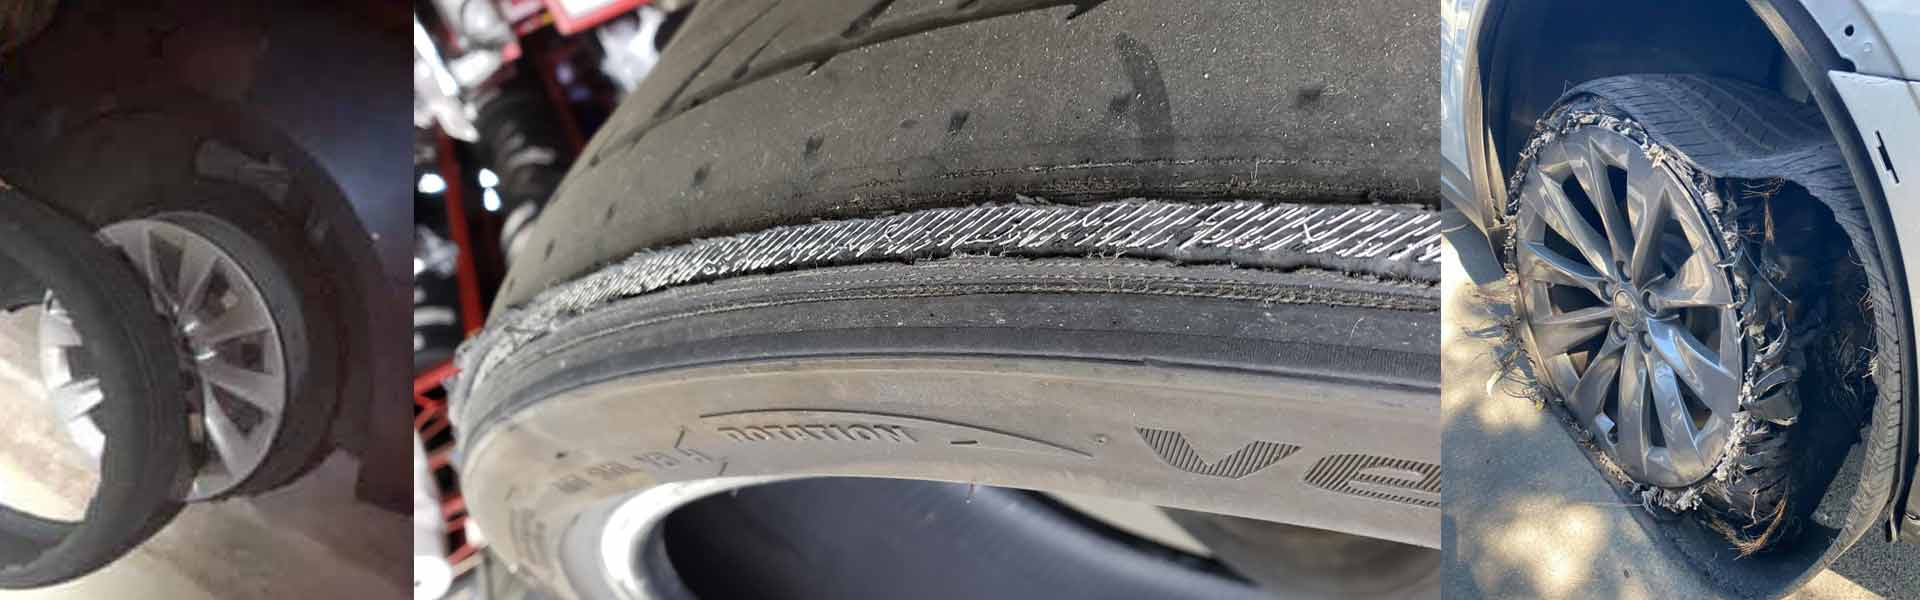 Tesla X and S tire blowout images